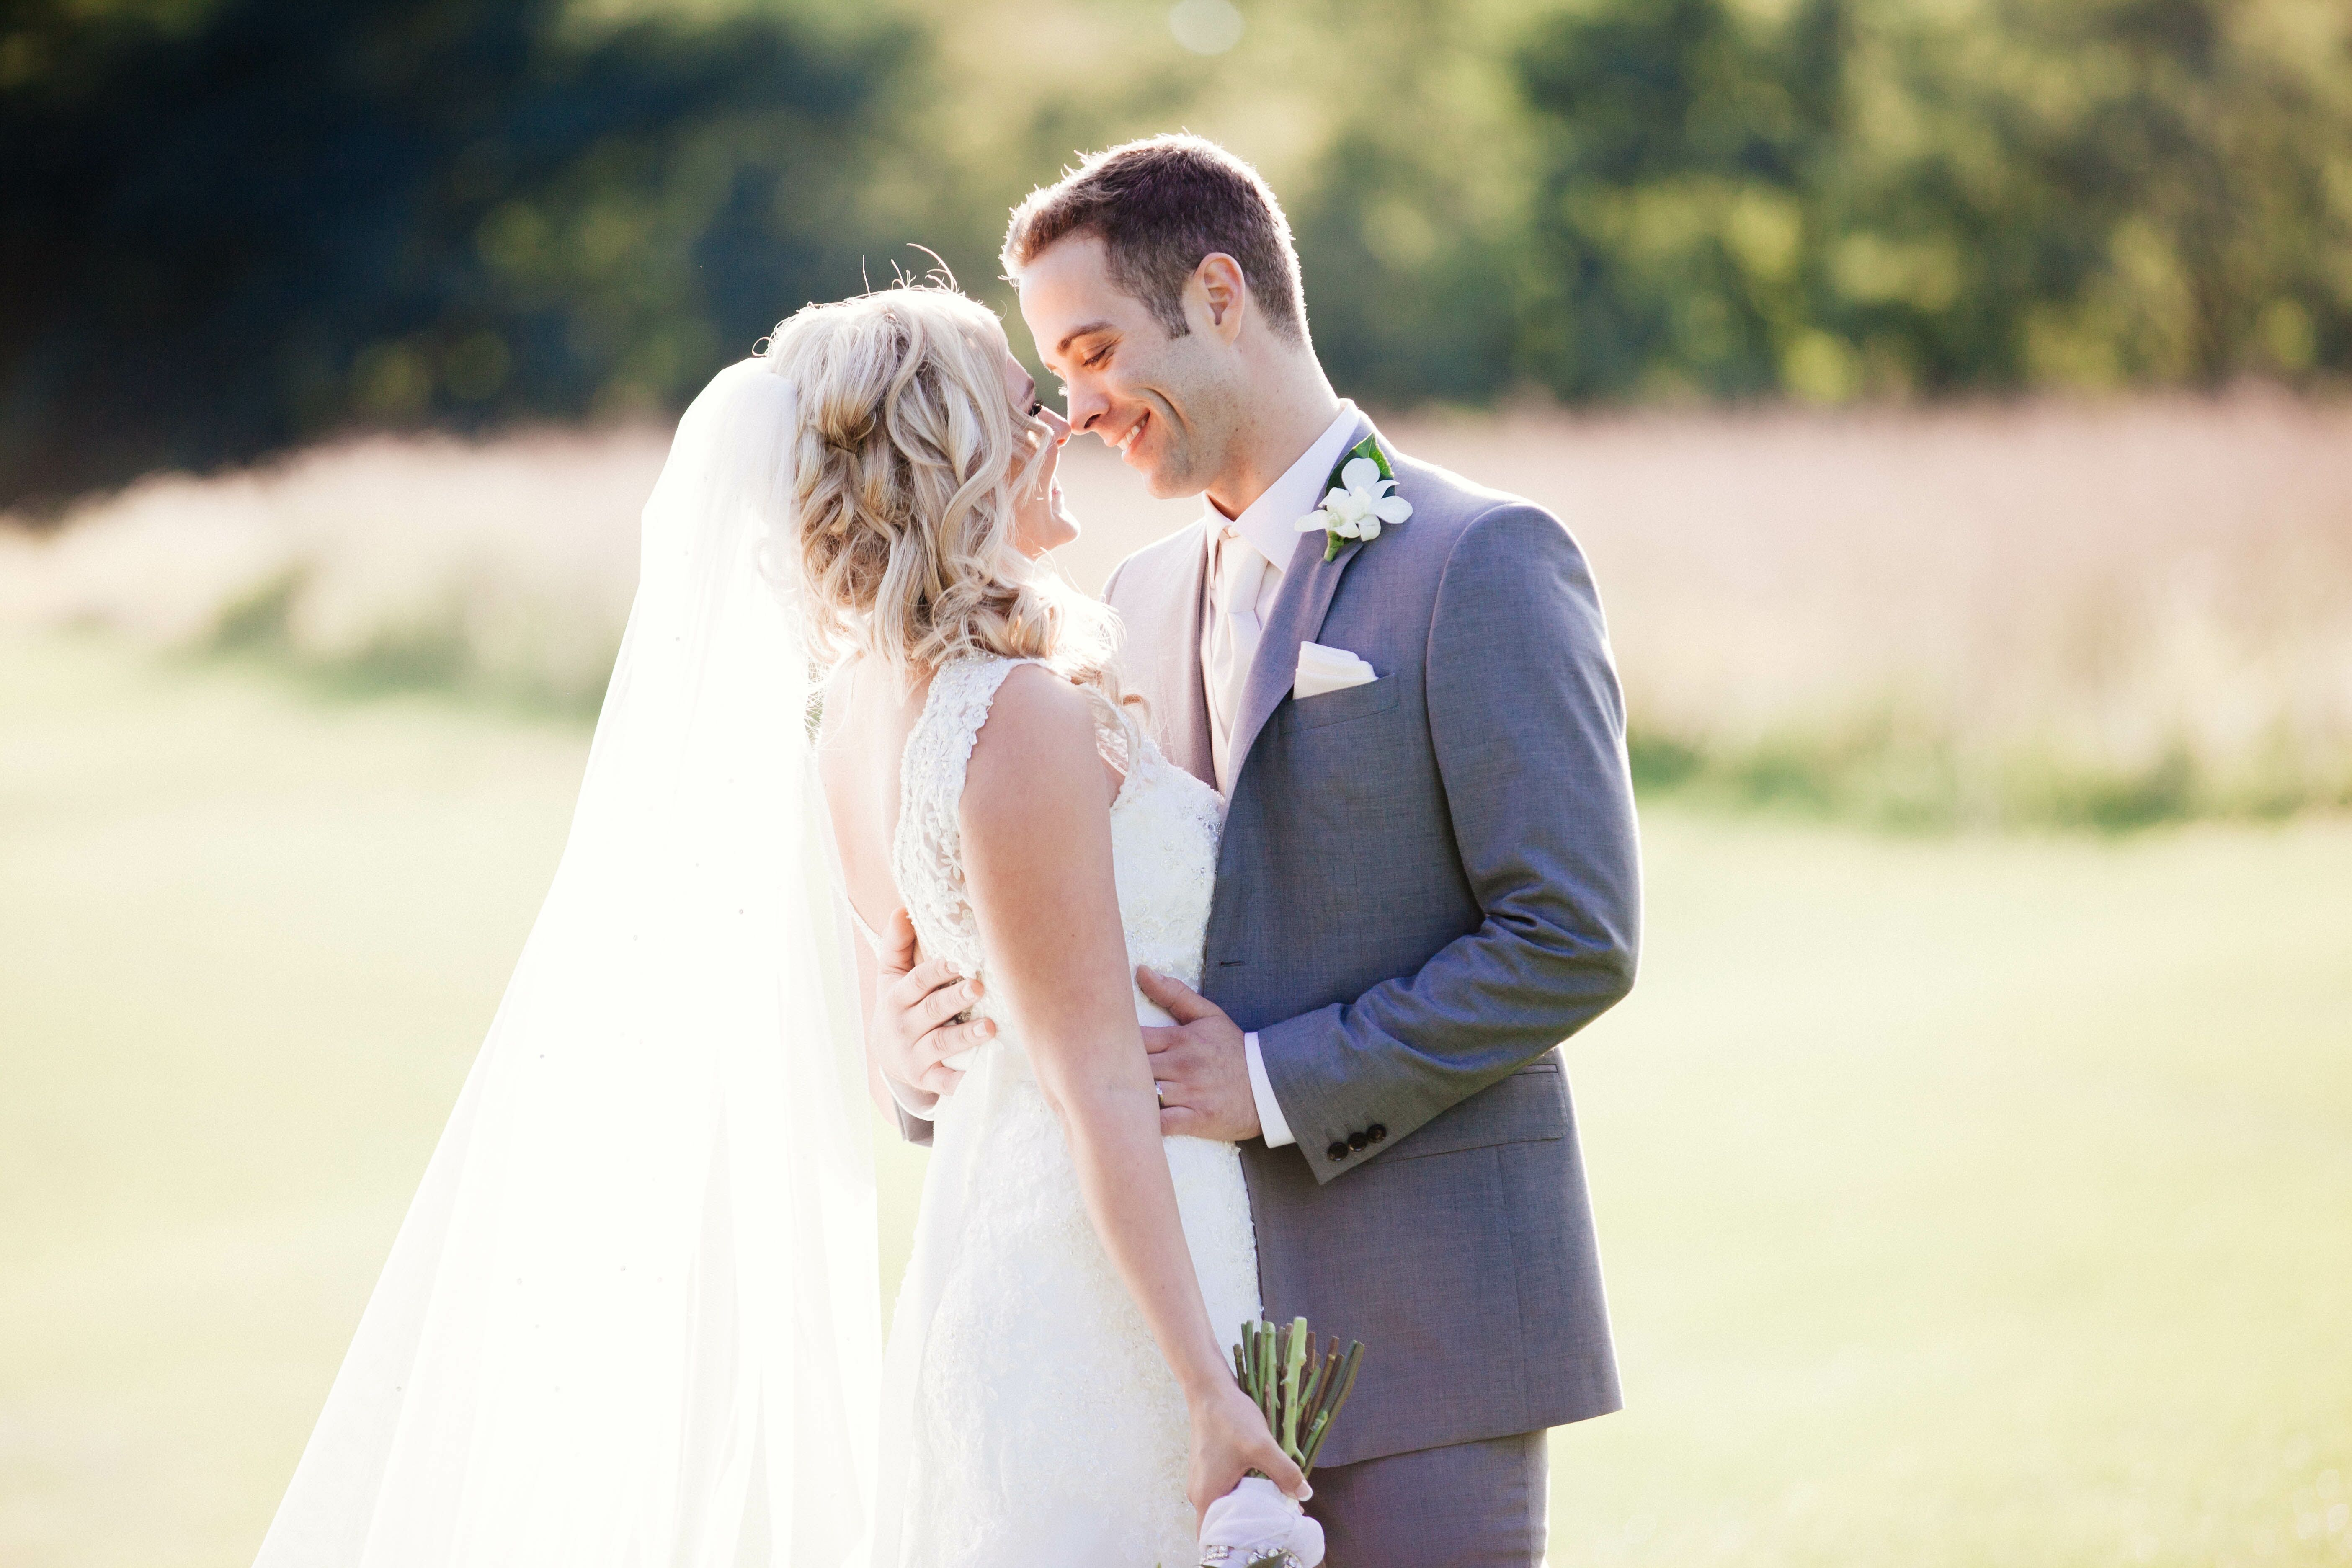 An Elegant Purple Wedding At St Charles Country Club In St